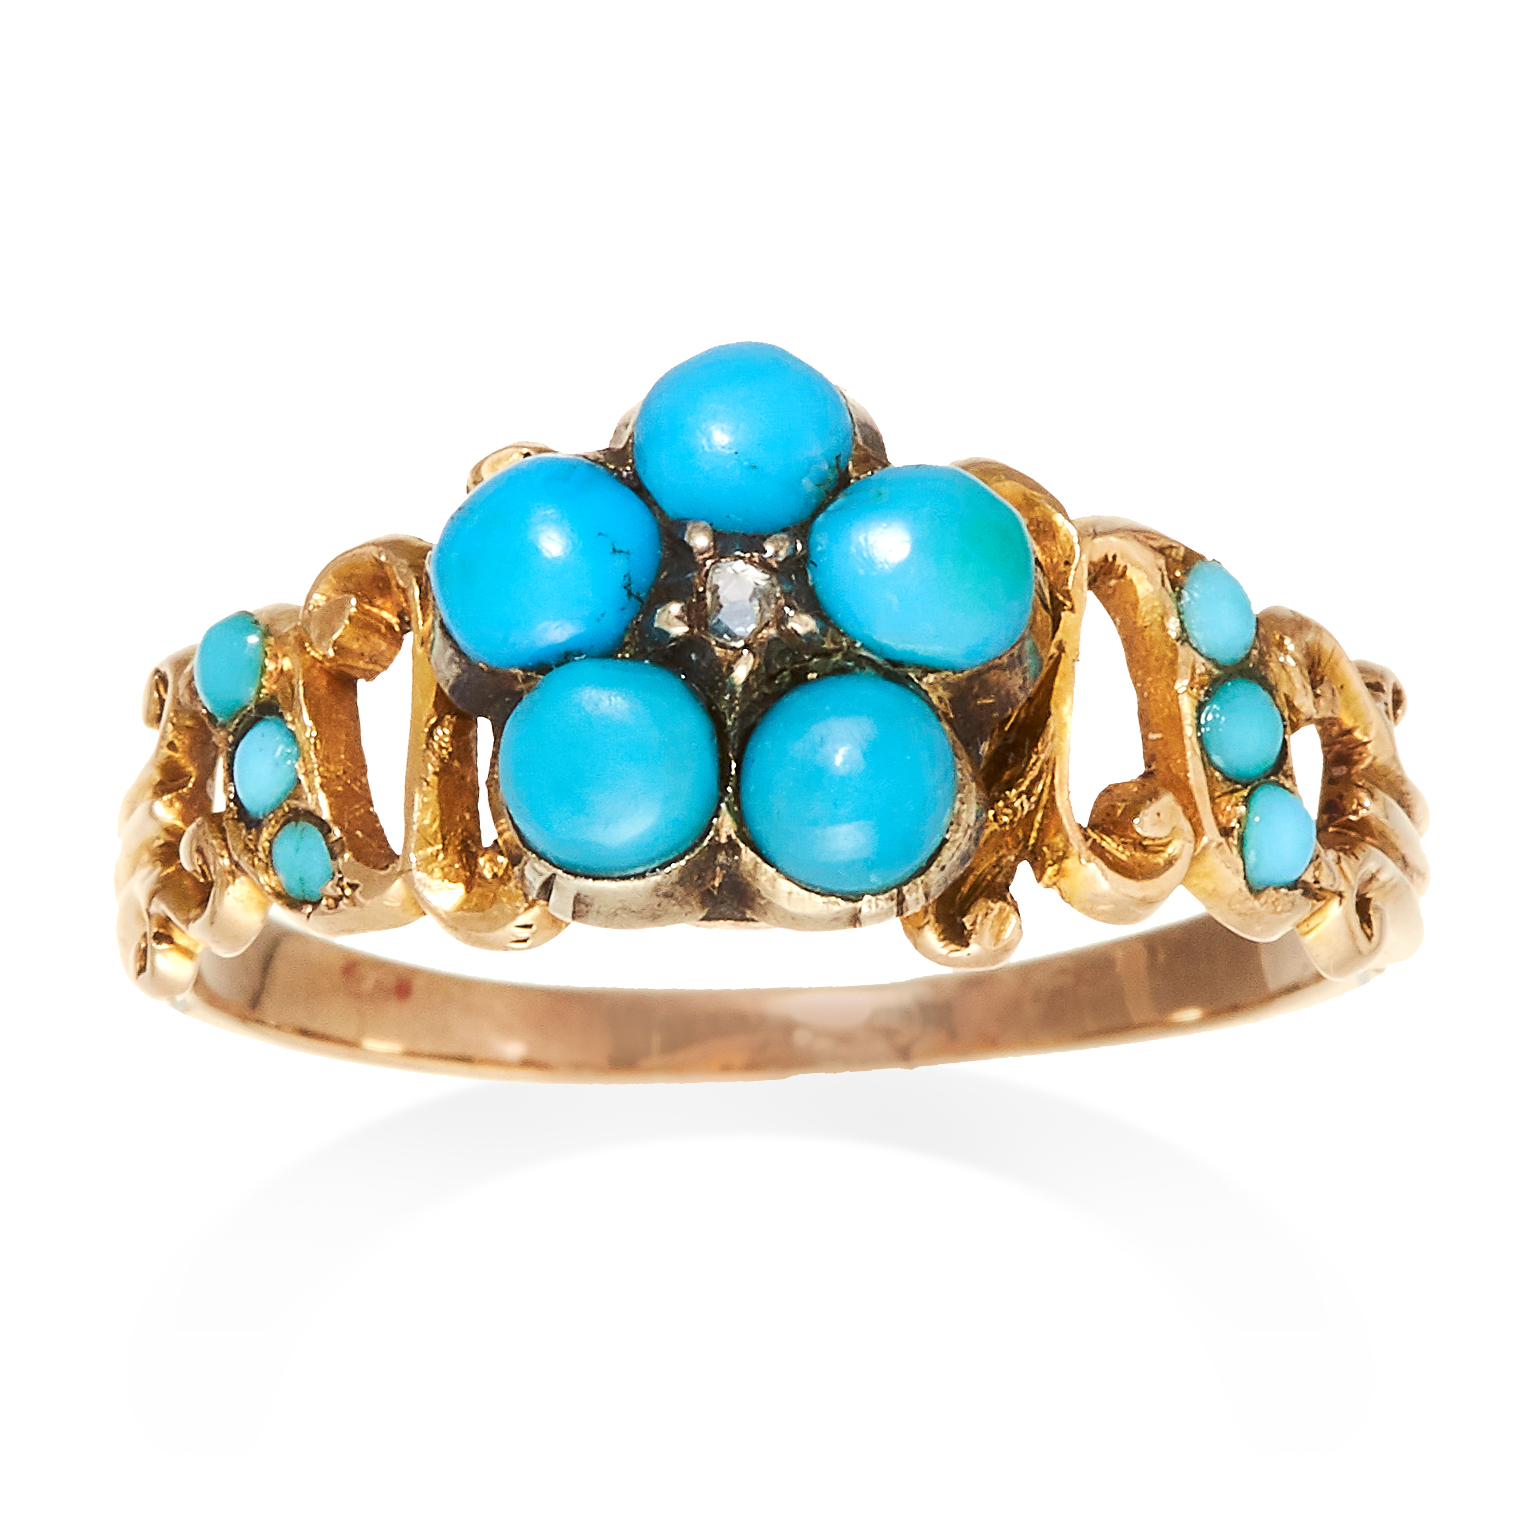 AN ANTIQUE TURQUOISE AND DIAMOND FORGET-ME-NOT RING, 19TH CENTURY in high carat yellow gold with